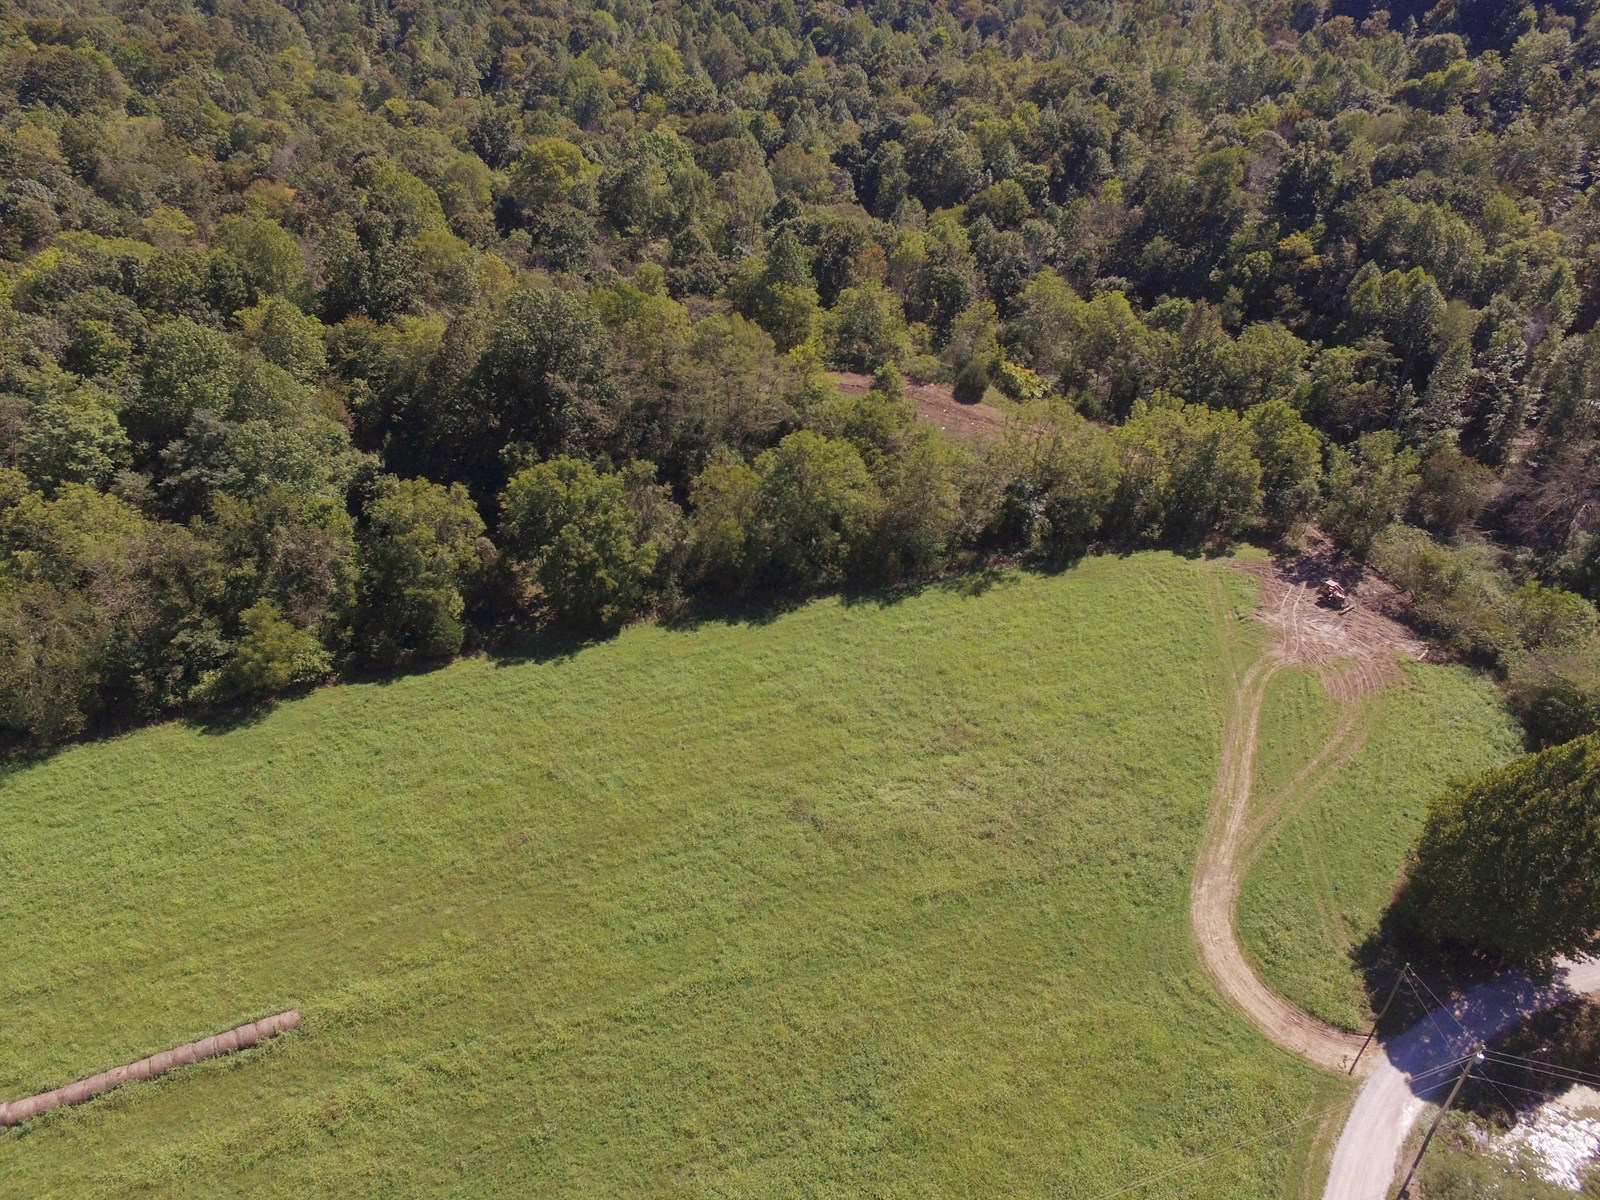 TRACT 3 - 22+/-ACRES - HUNTING - BLDG. SITES - LIBERTY, KY